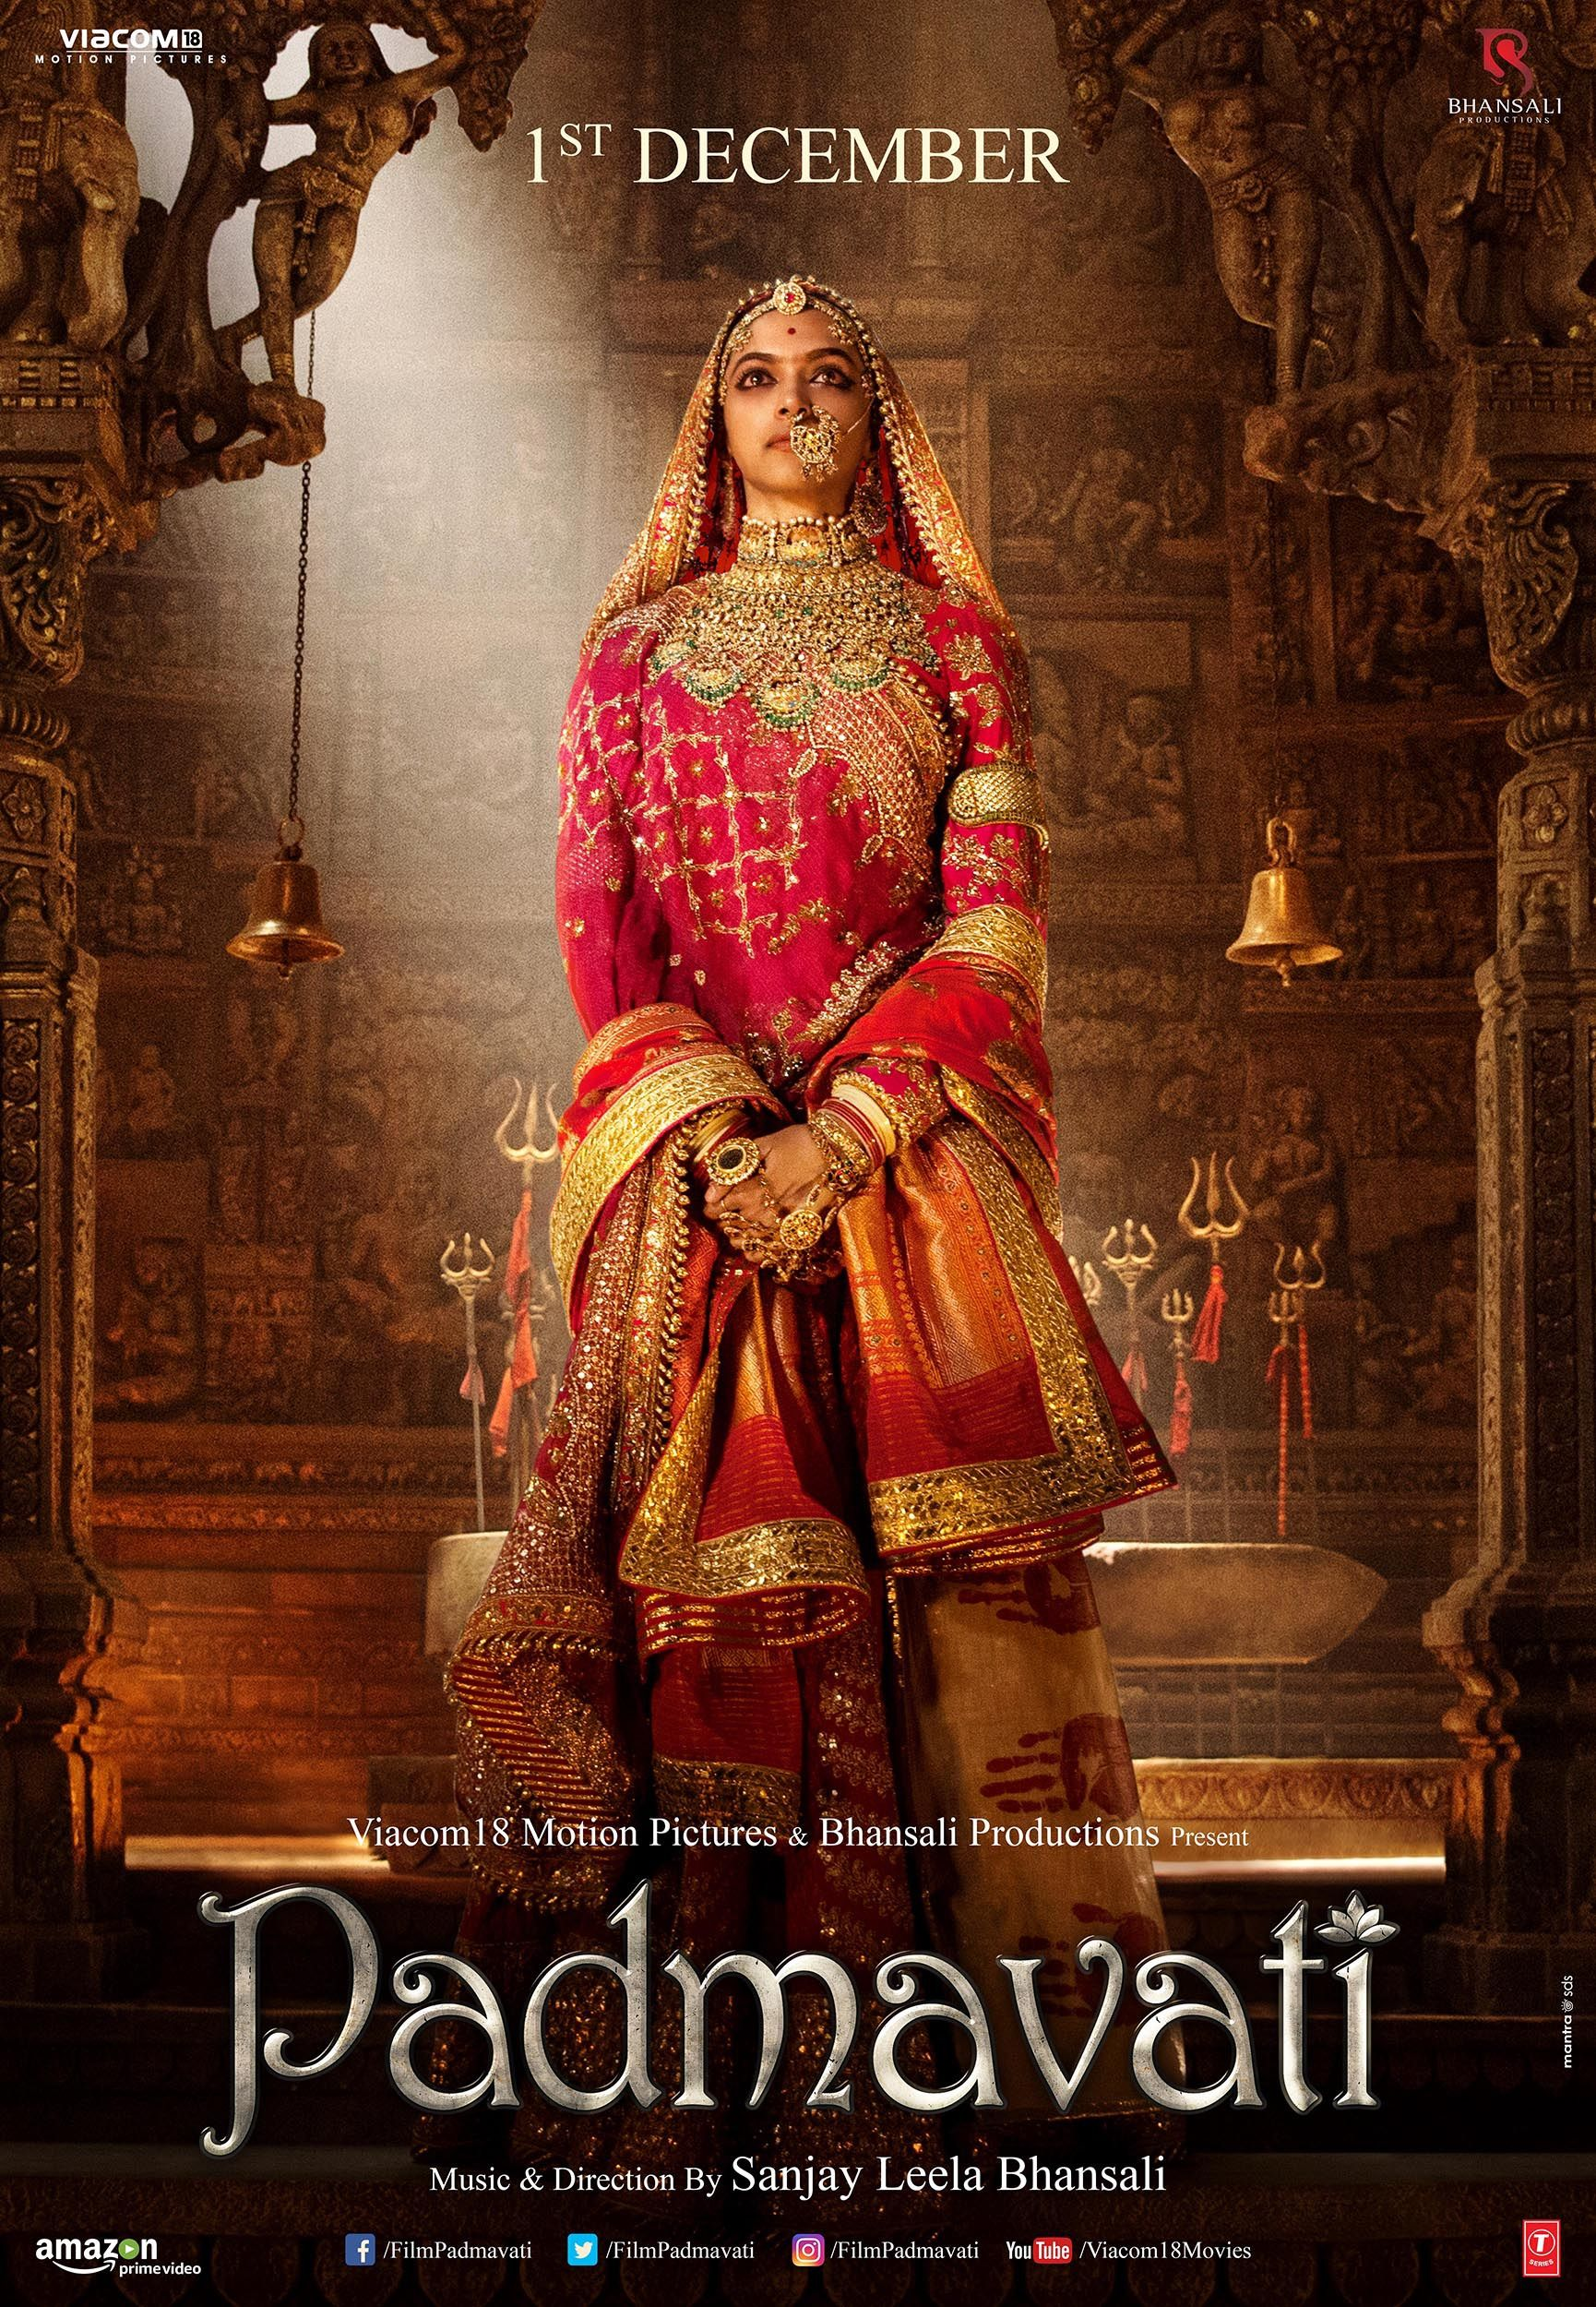 Padmavati Poster 1 Full Size Poster Image Goldposter Download Movies Full Movies Online Free Full Movies Download